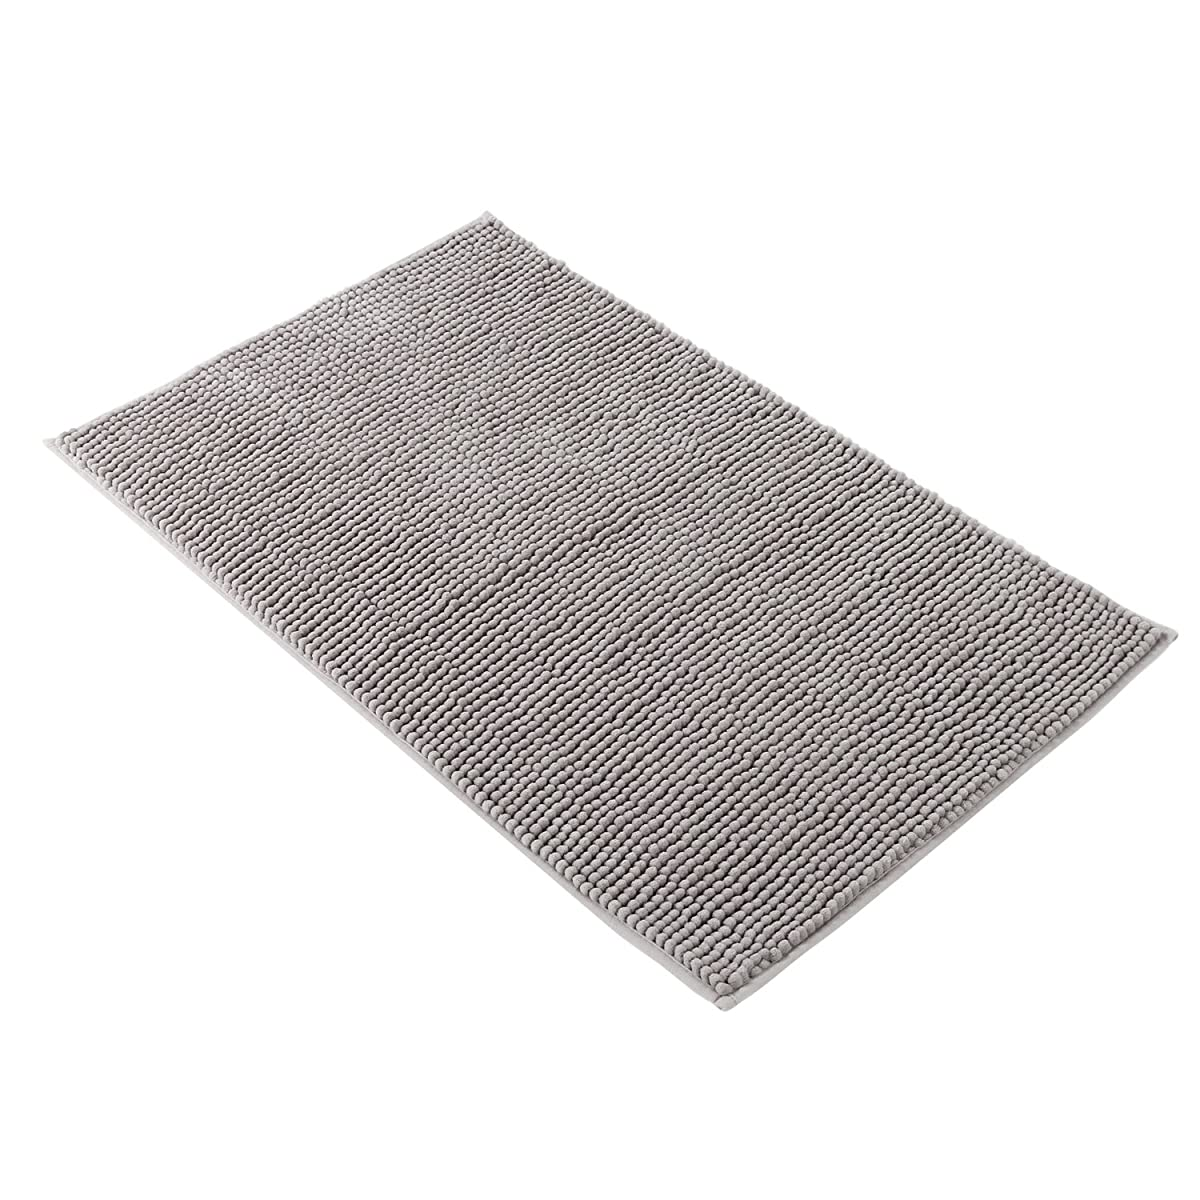 Lifewit Microfiber Soft Bathroom Mat Non Slip Shaggy